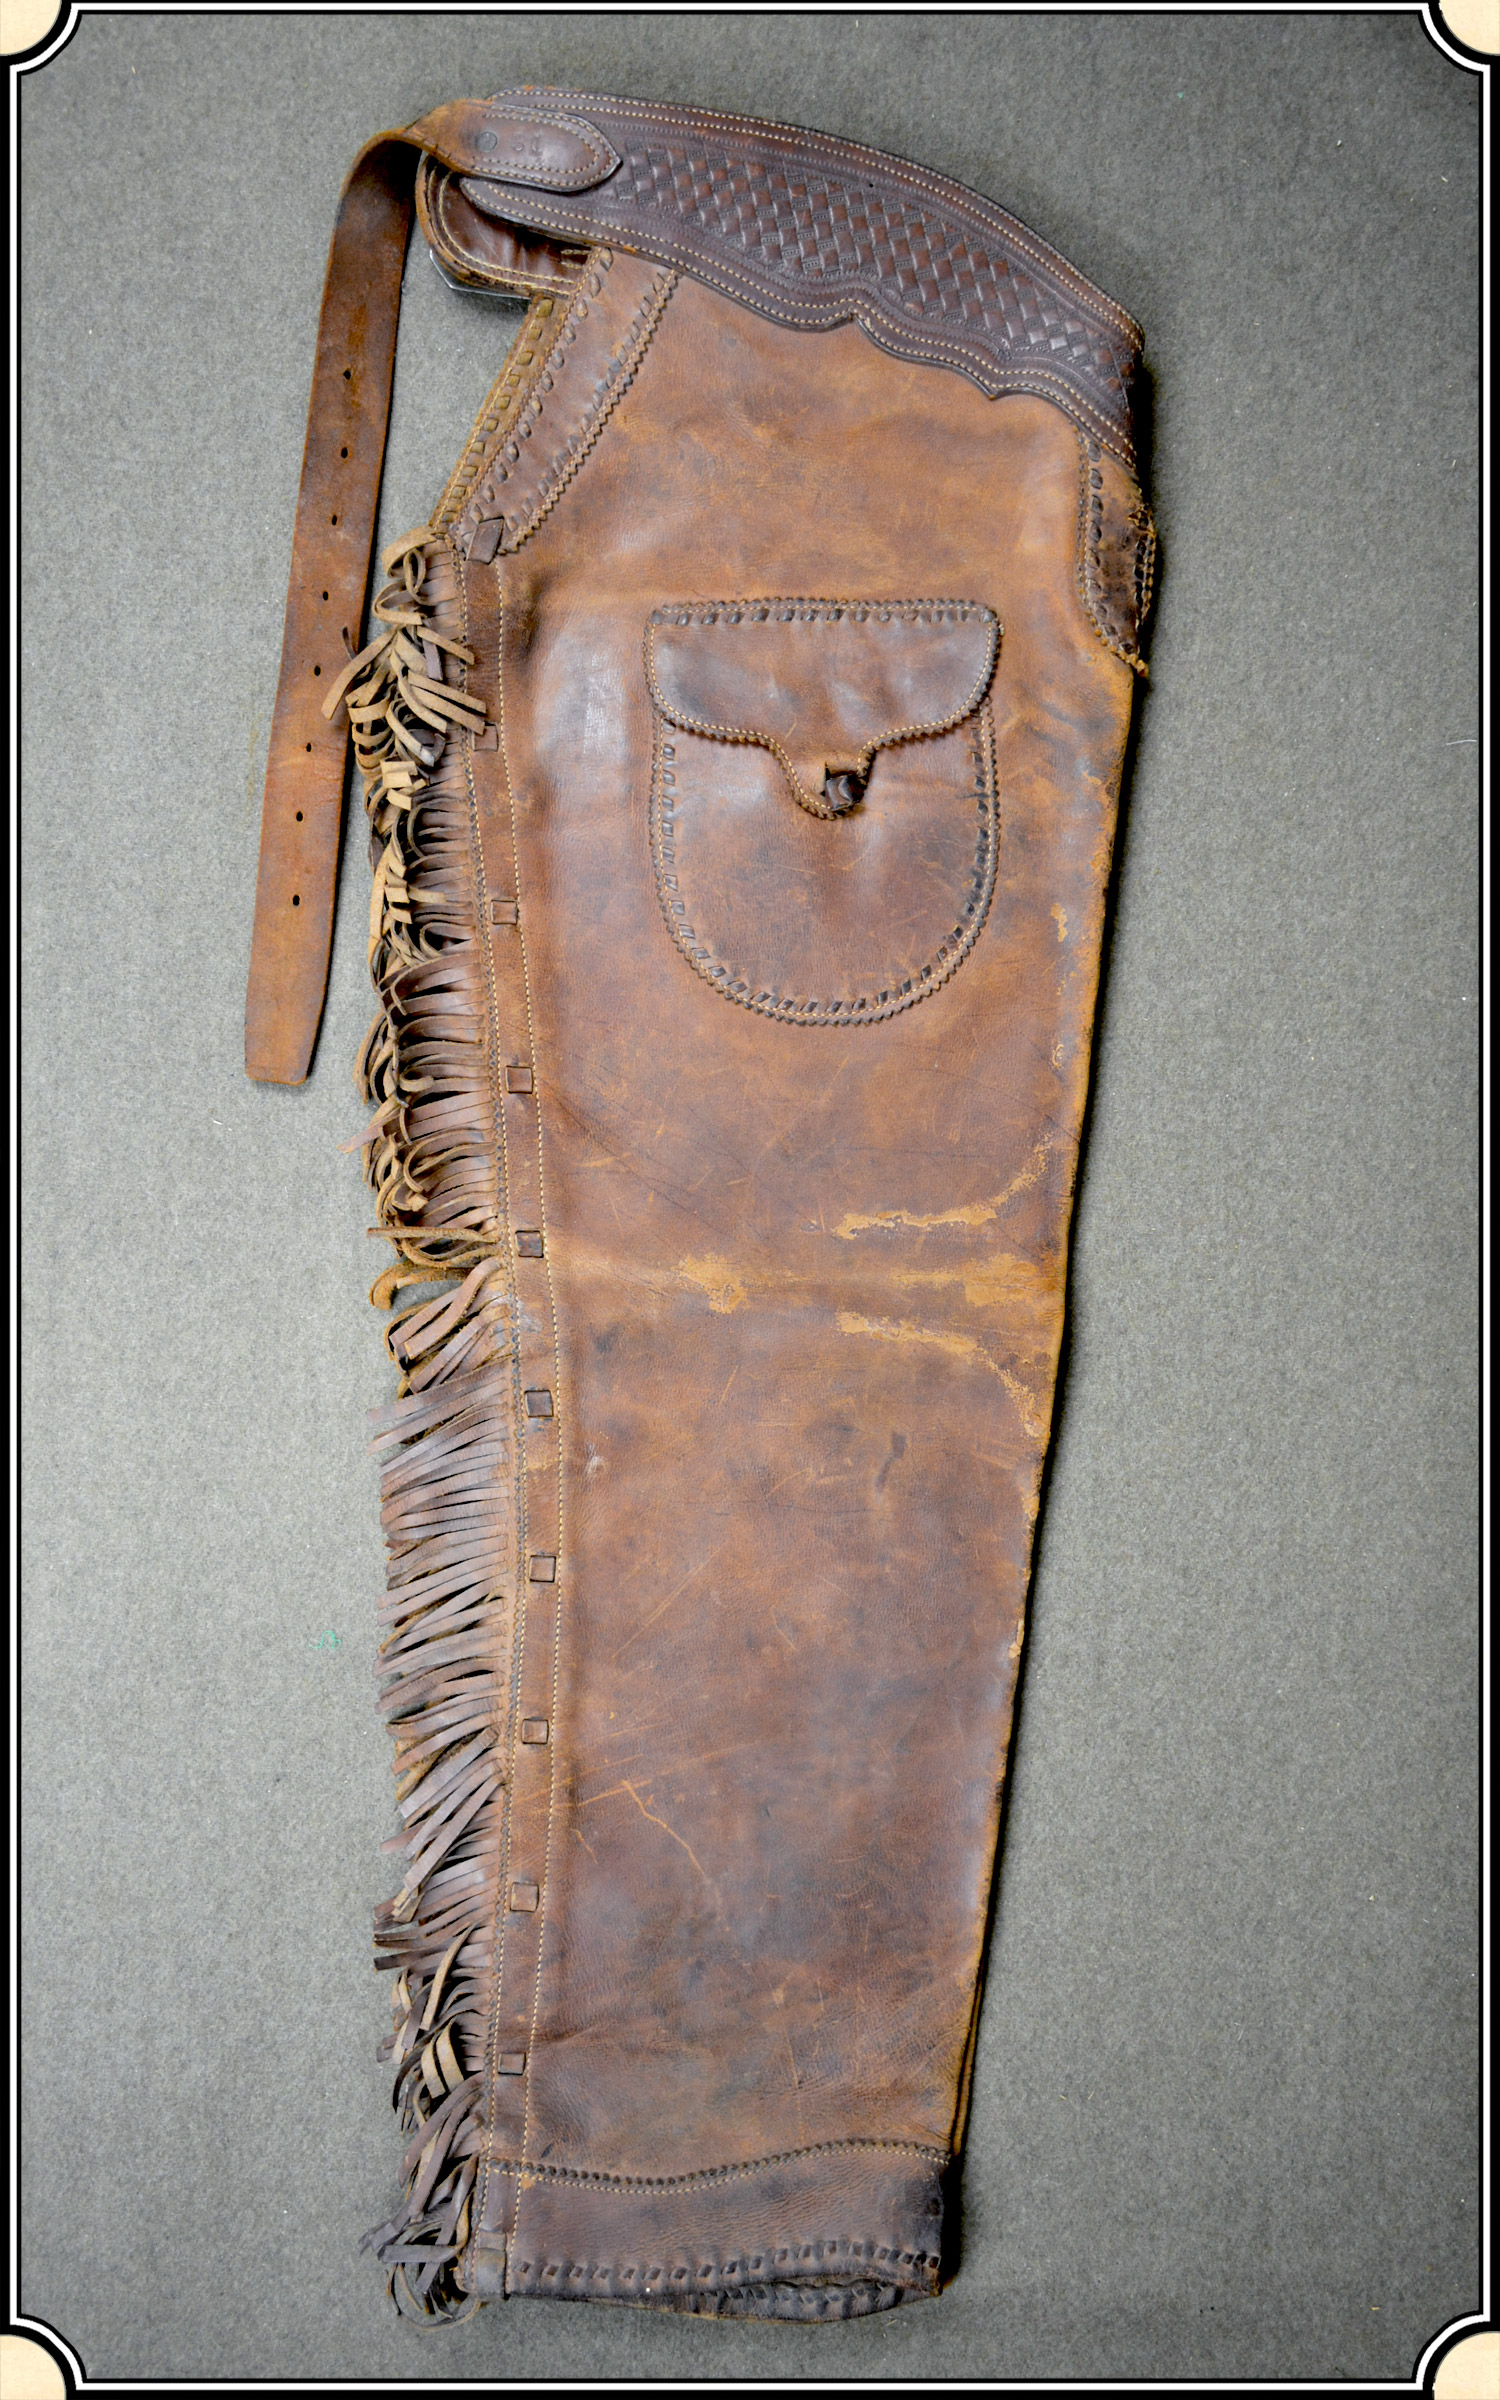 Original Antique shotgun chaps. - Click to Enlarge Image